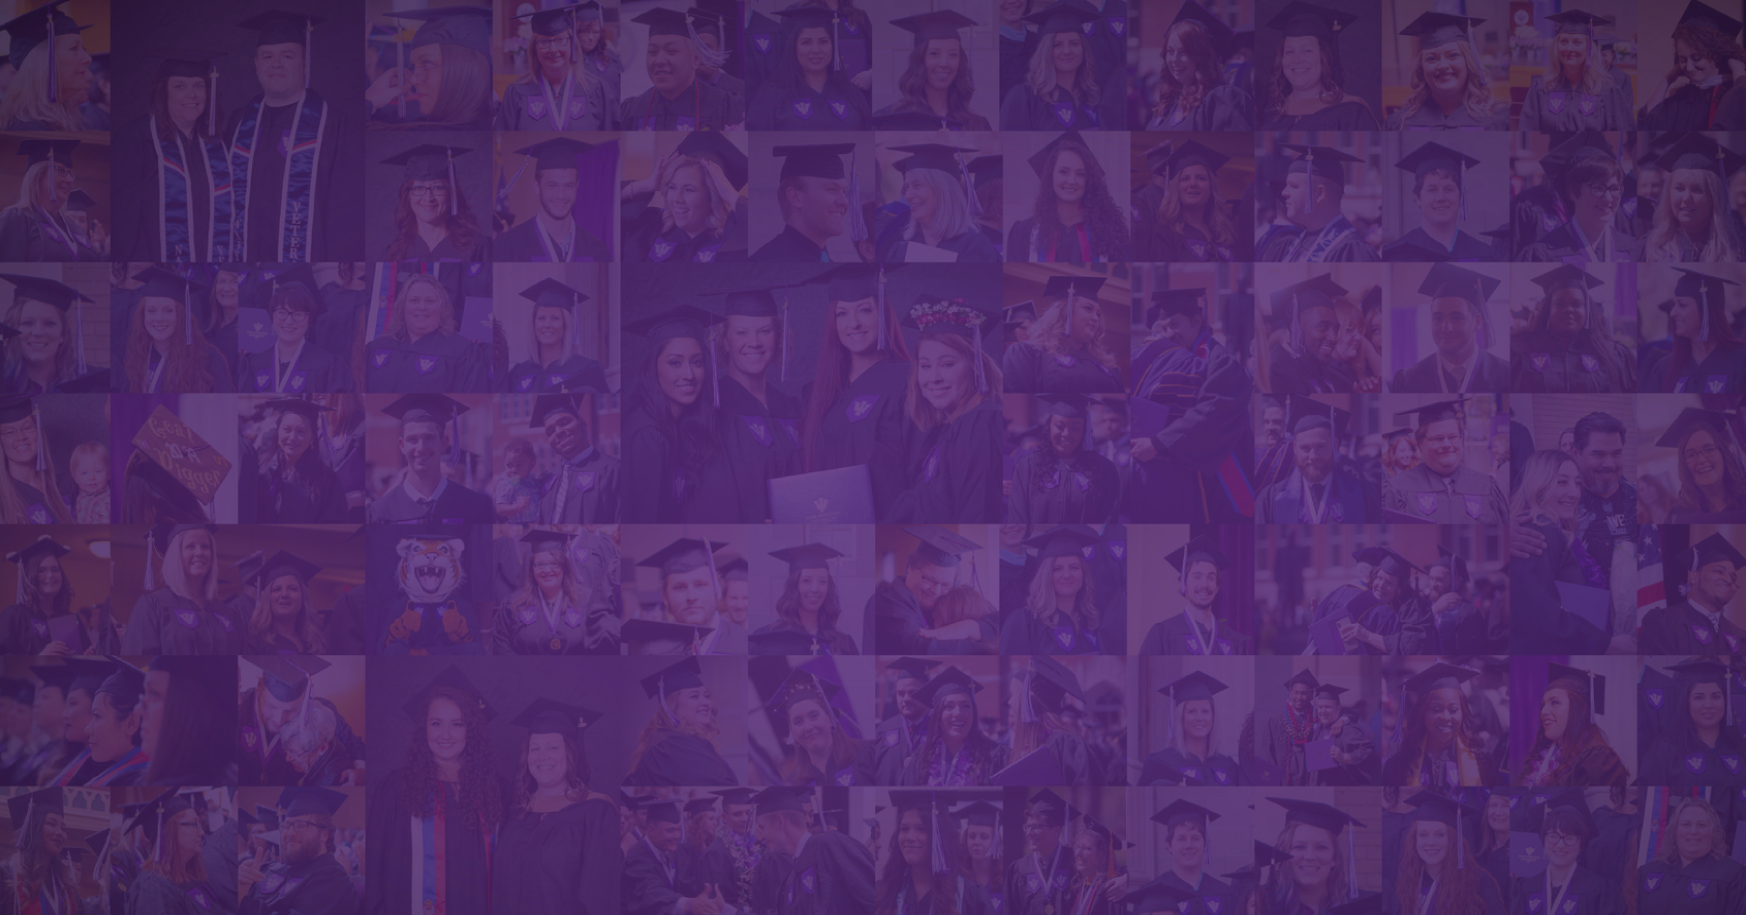 Background image with college graduates